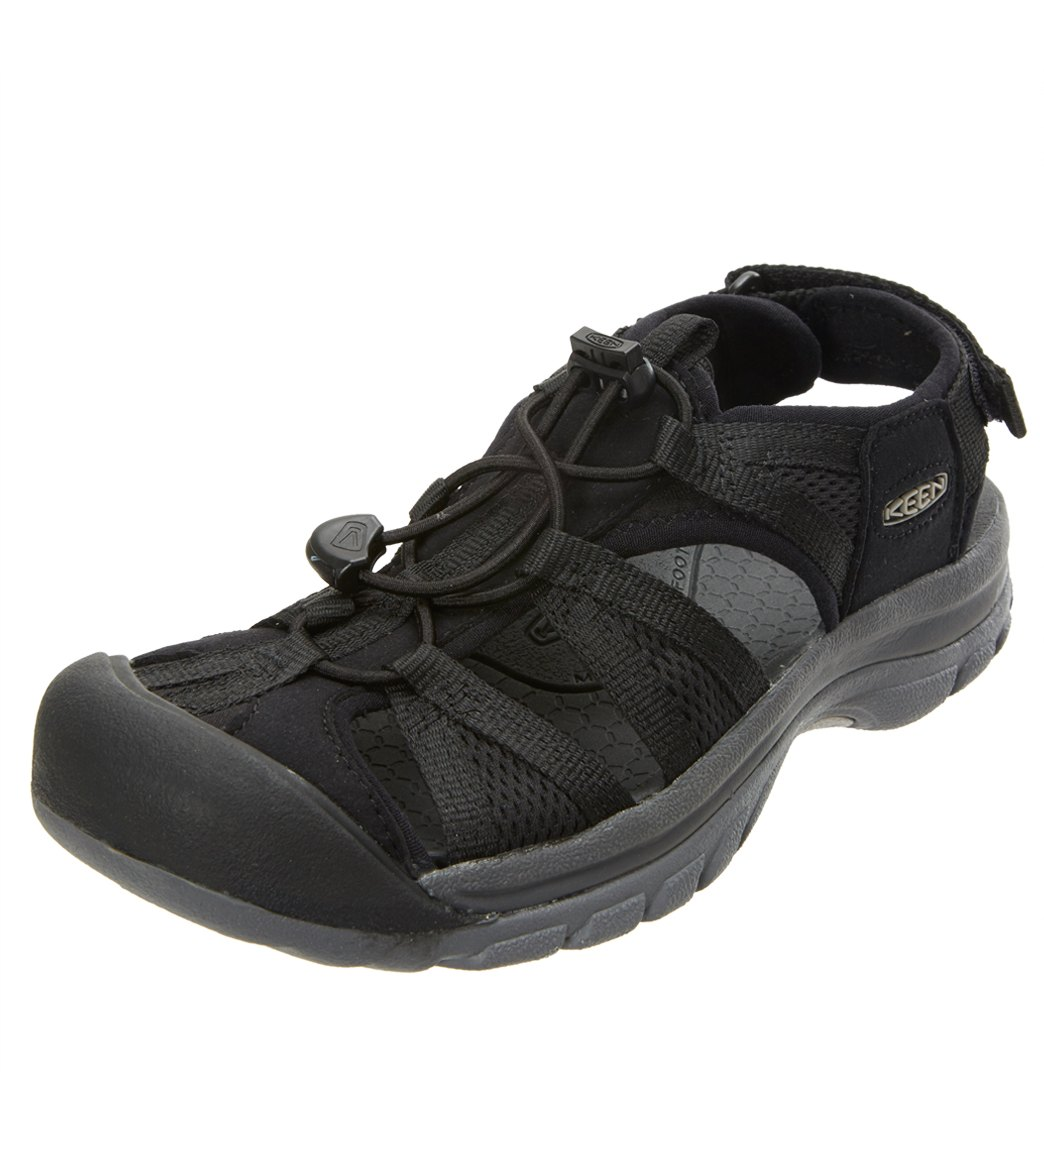 bb93e7a2276a Keen Women s Venice II H2 Water Shoe at SwimOutlet.com - Free Shipping